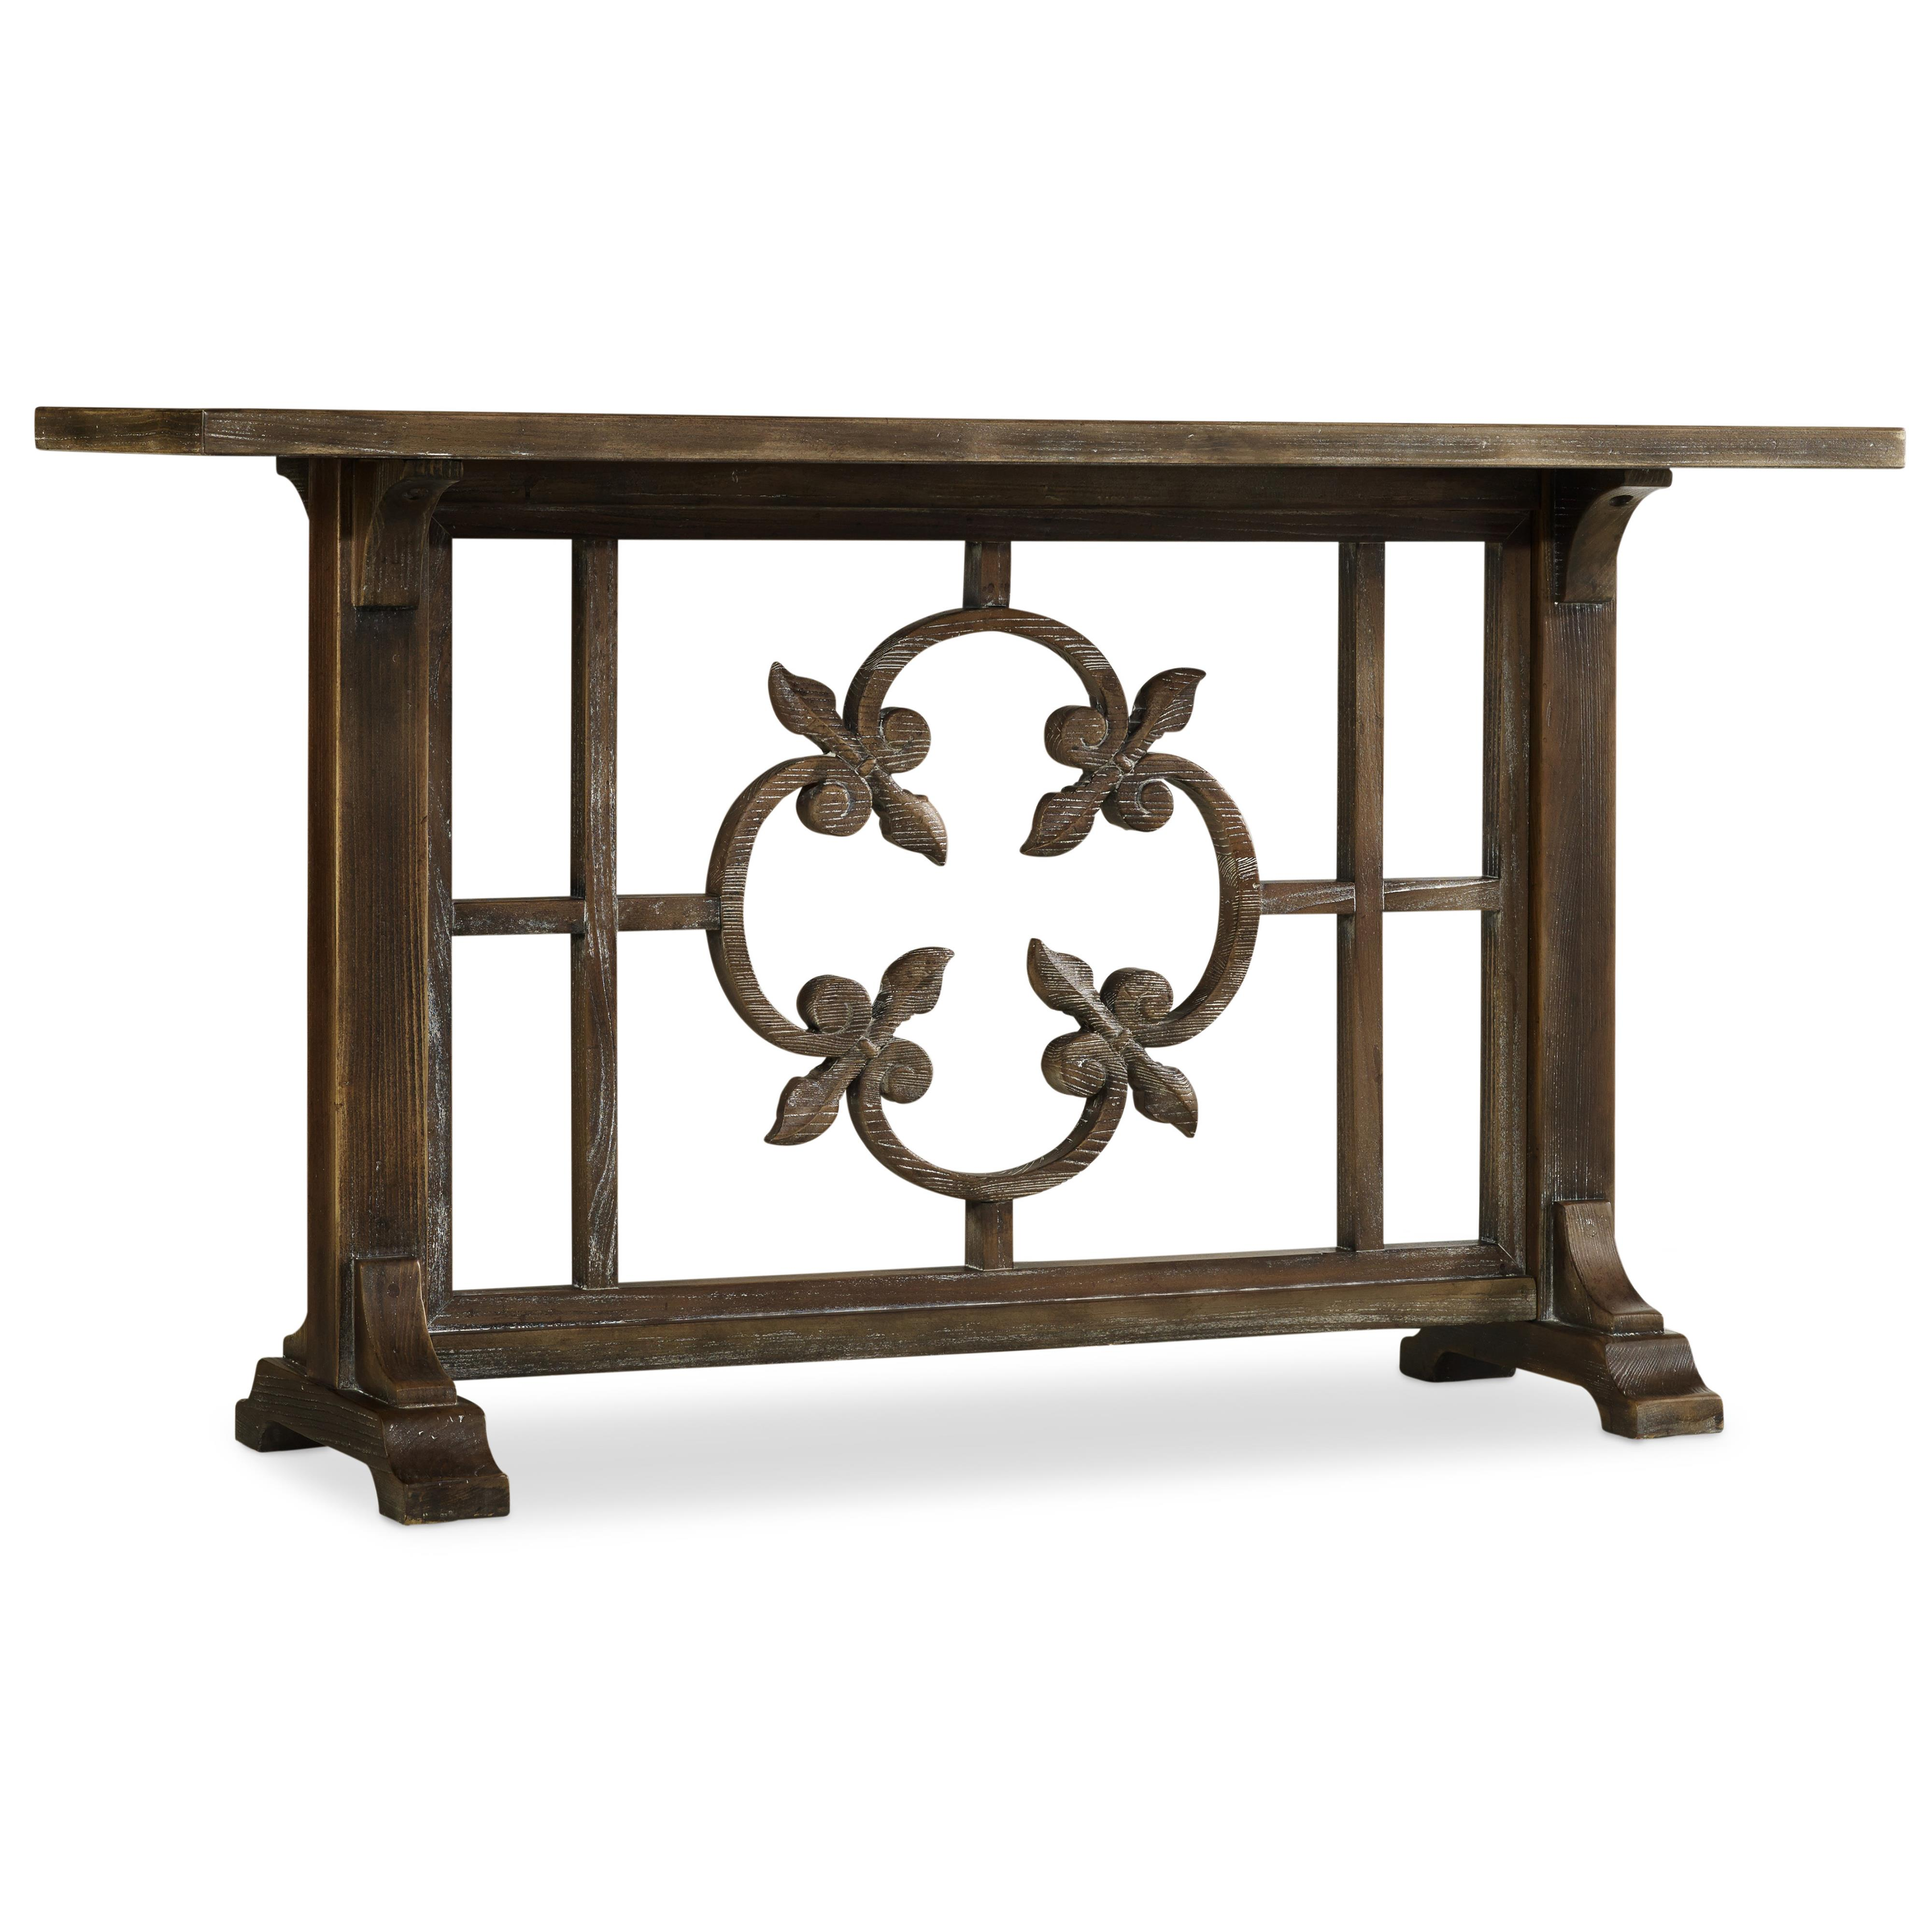 Hooker Furniture Mélange Cora Console - Item Number: 638-85153